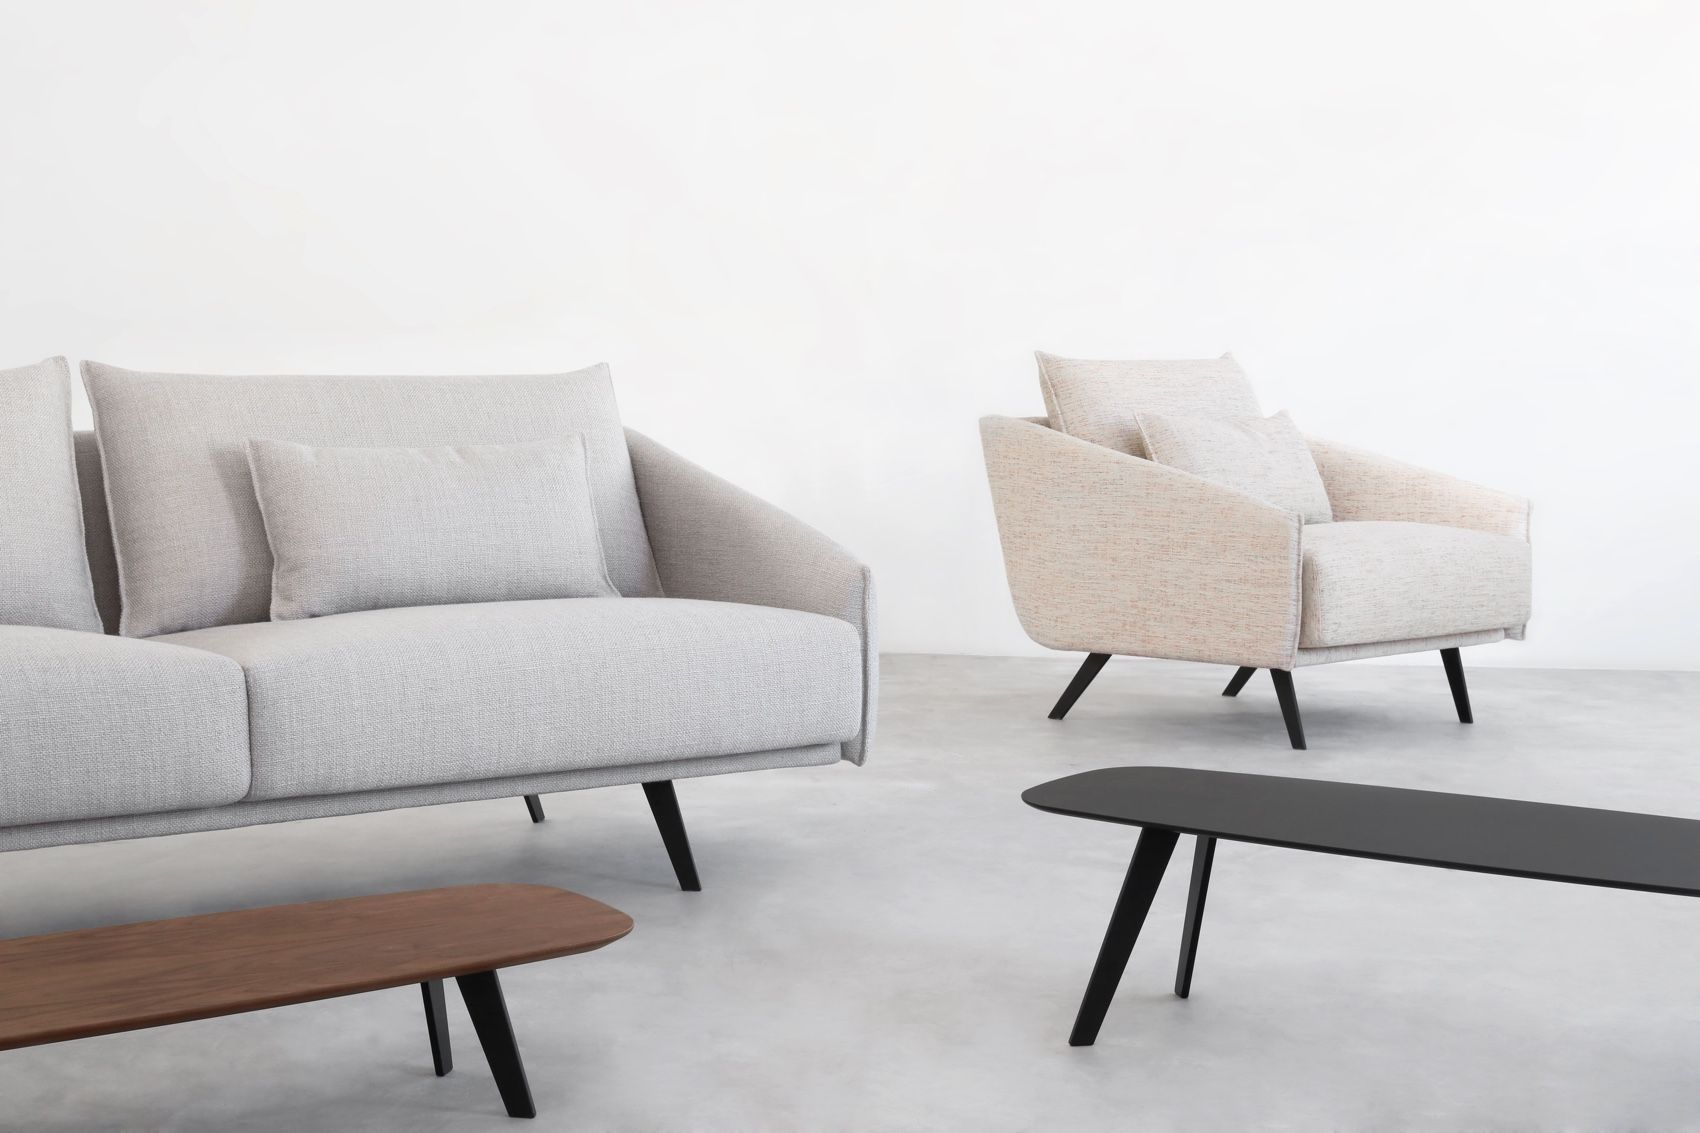 Stua Solapa Tables with costura sofa